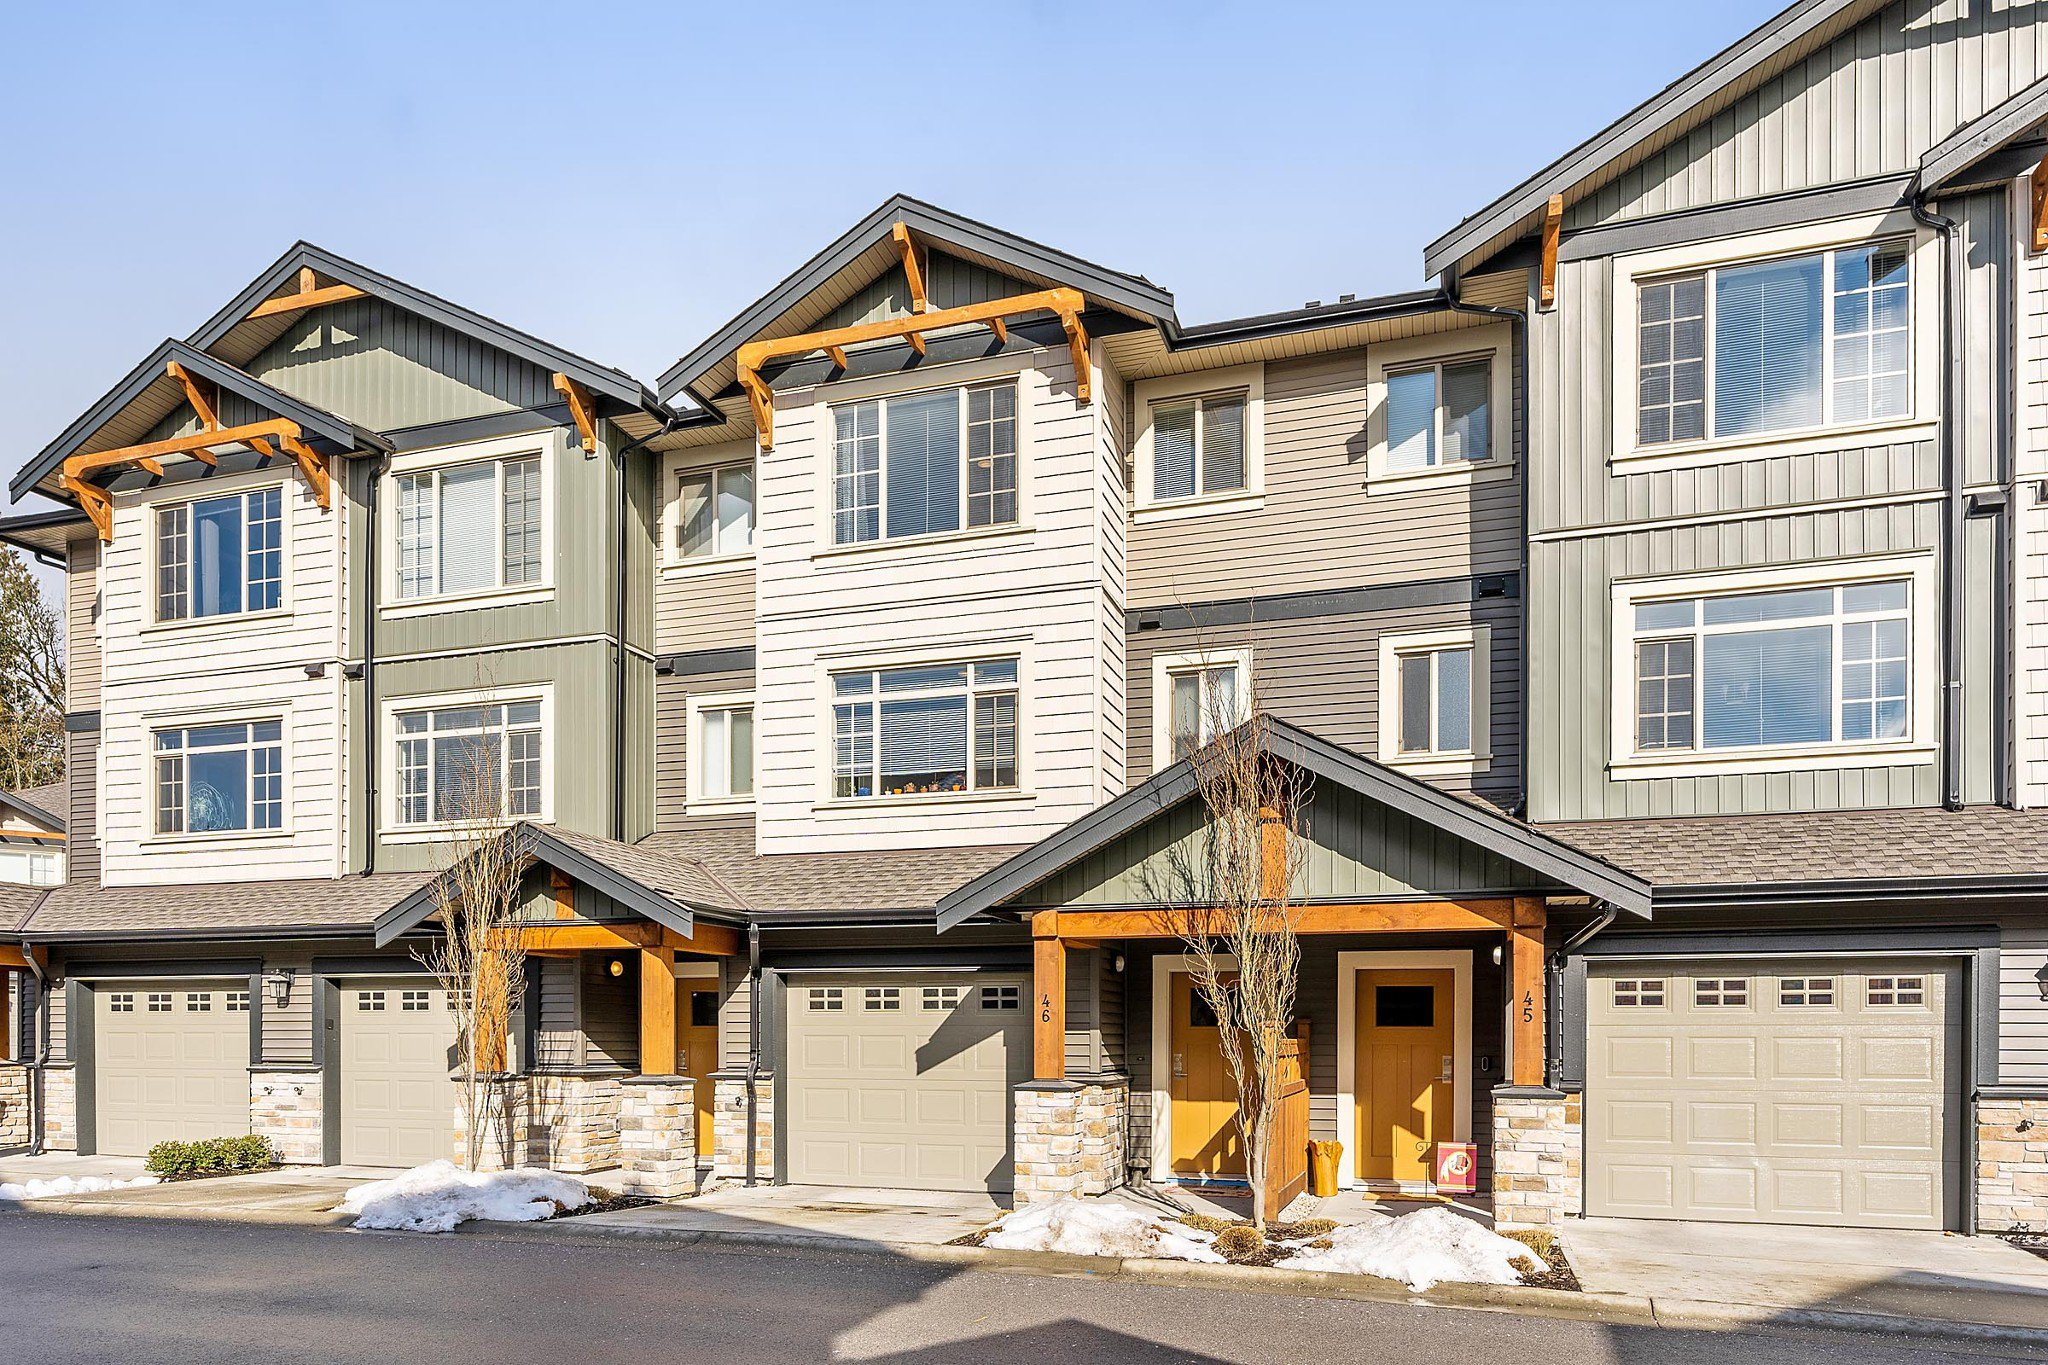 """Main Photo: 46 11305 240 Street in Maple Ridge: Cottonwood MR Townhouse for sale in """"MAPLE HEIGHTS"""" : MLS®# R2342753"""